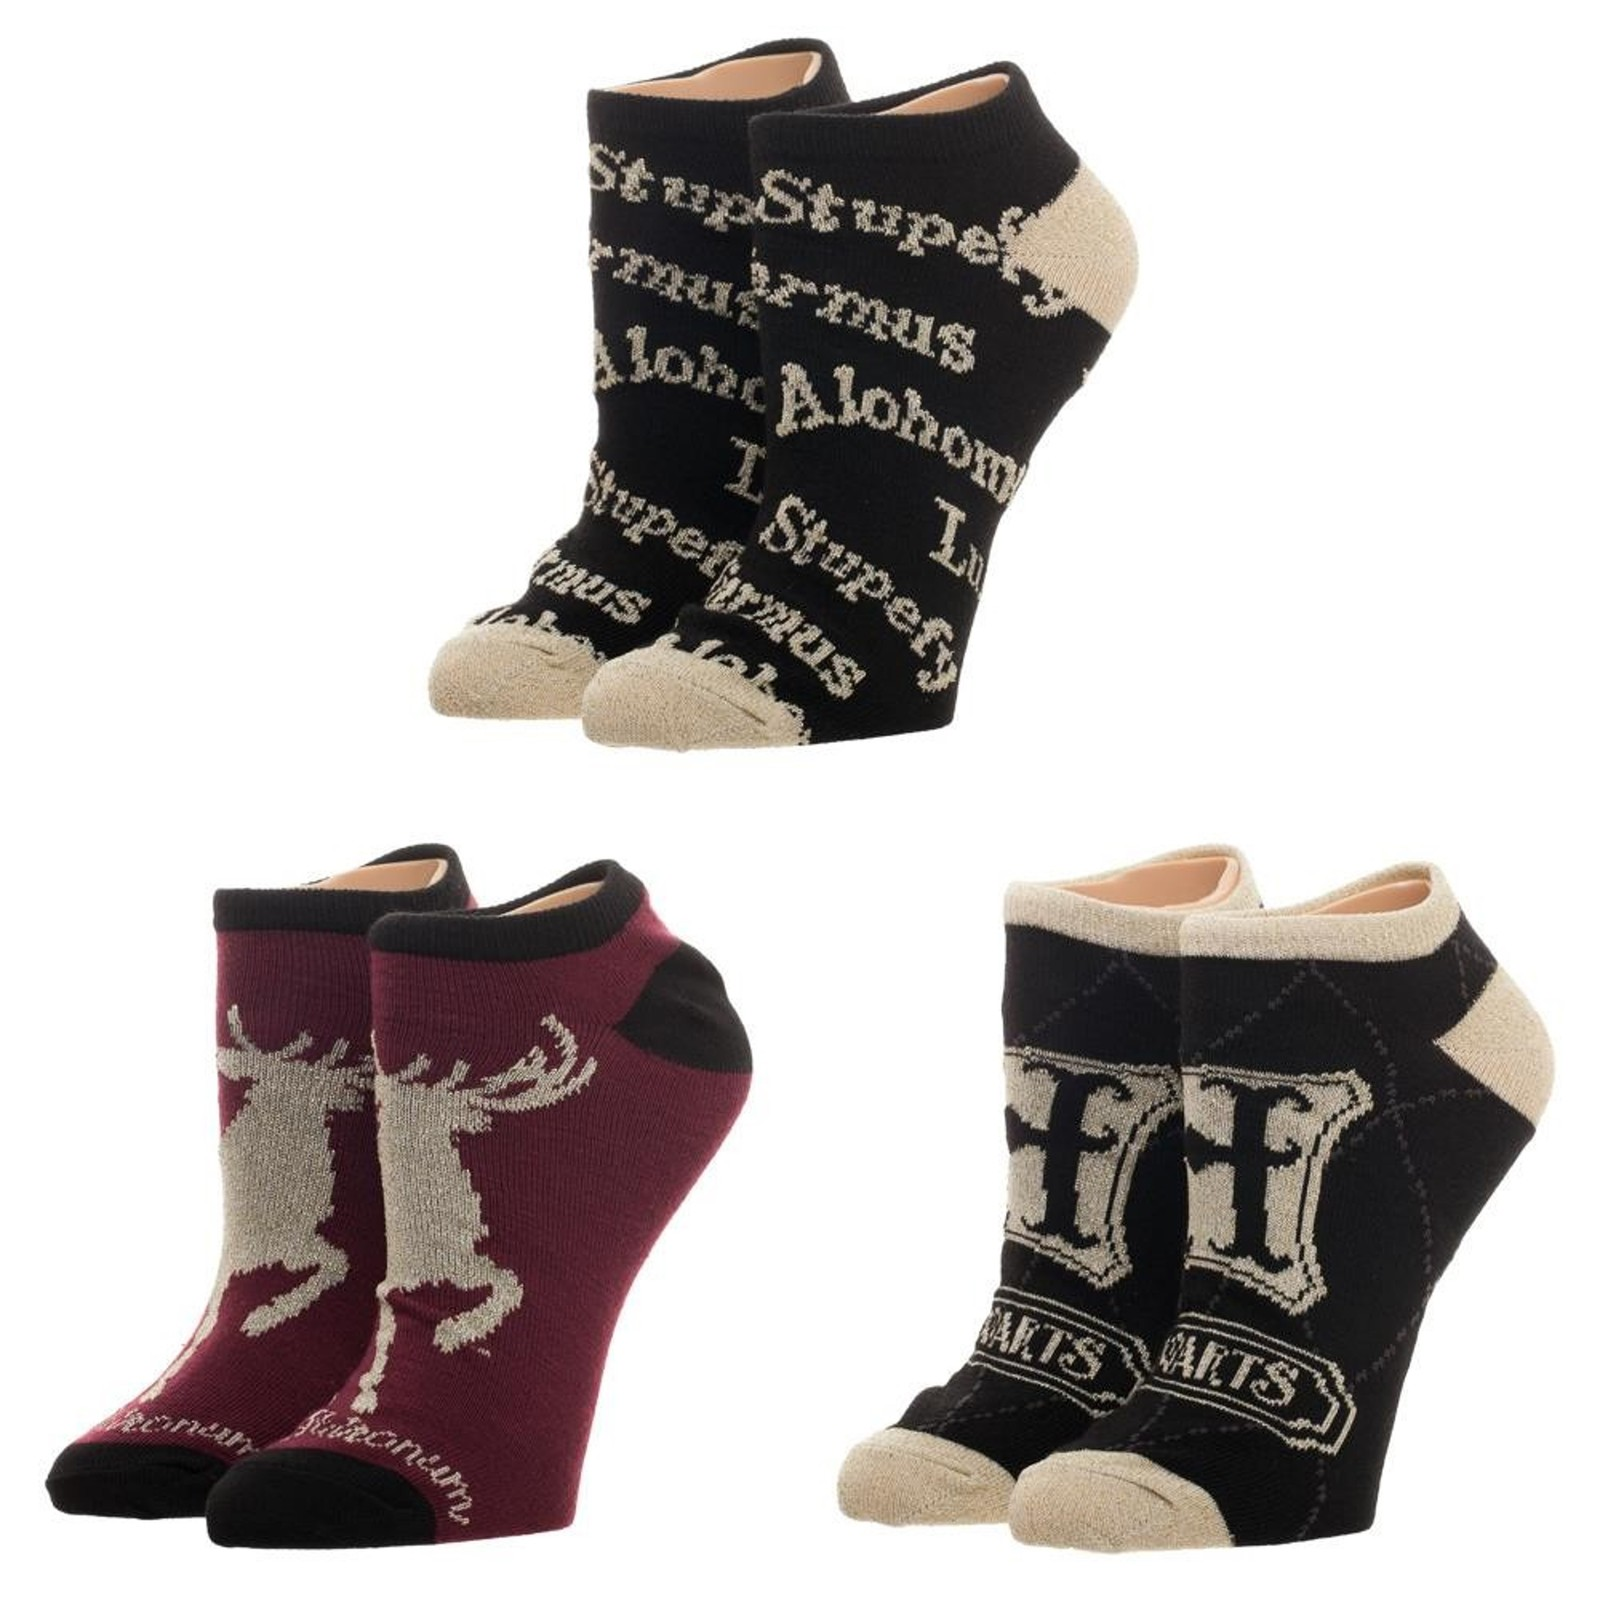 Primary image for Harry Potter Advanced Wizardry 3 Pack Low Cut Lurex Ankle Socks - OSFM